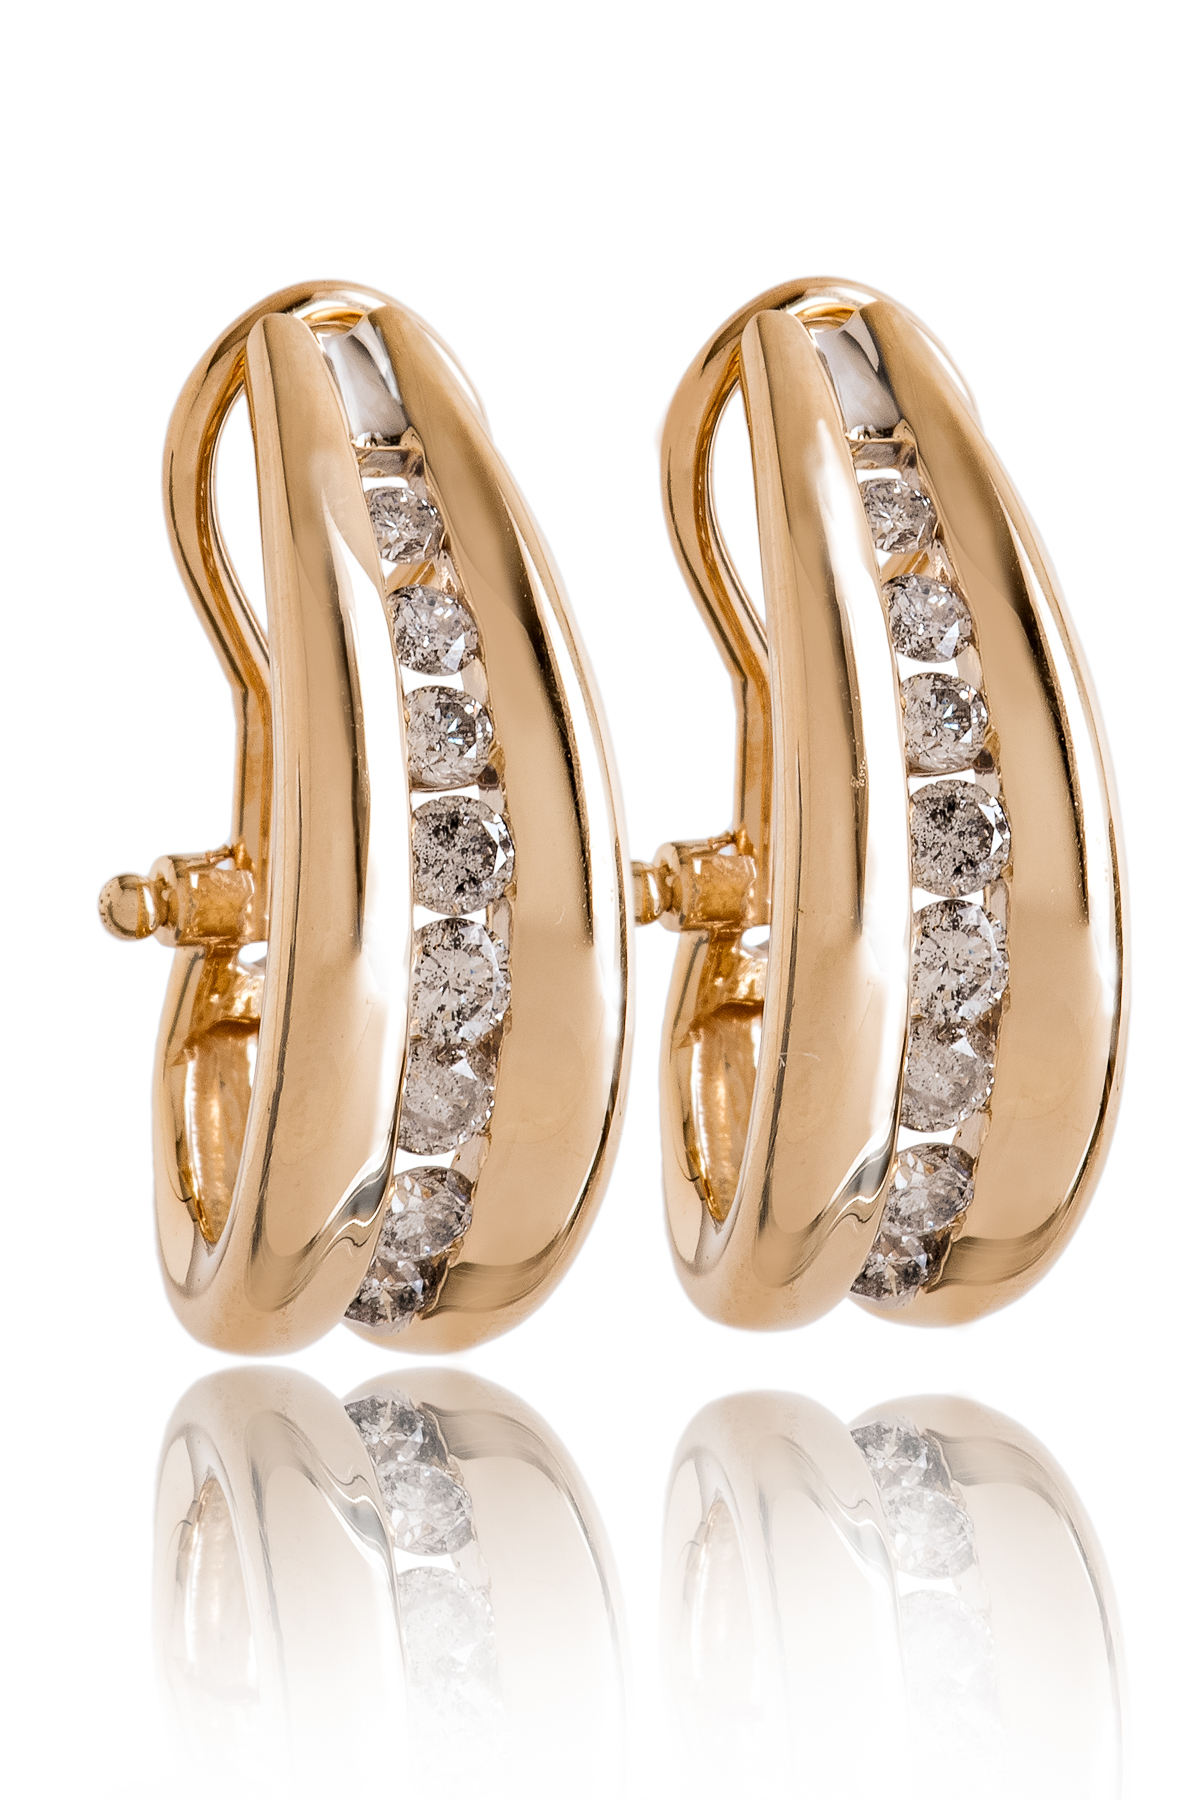 diamond-gold-ear-rings-denizard-jewelry-njohnston-photography-2